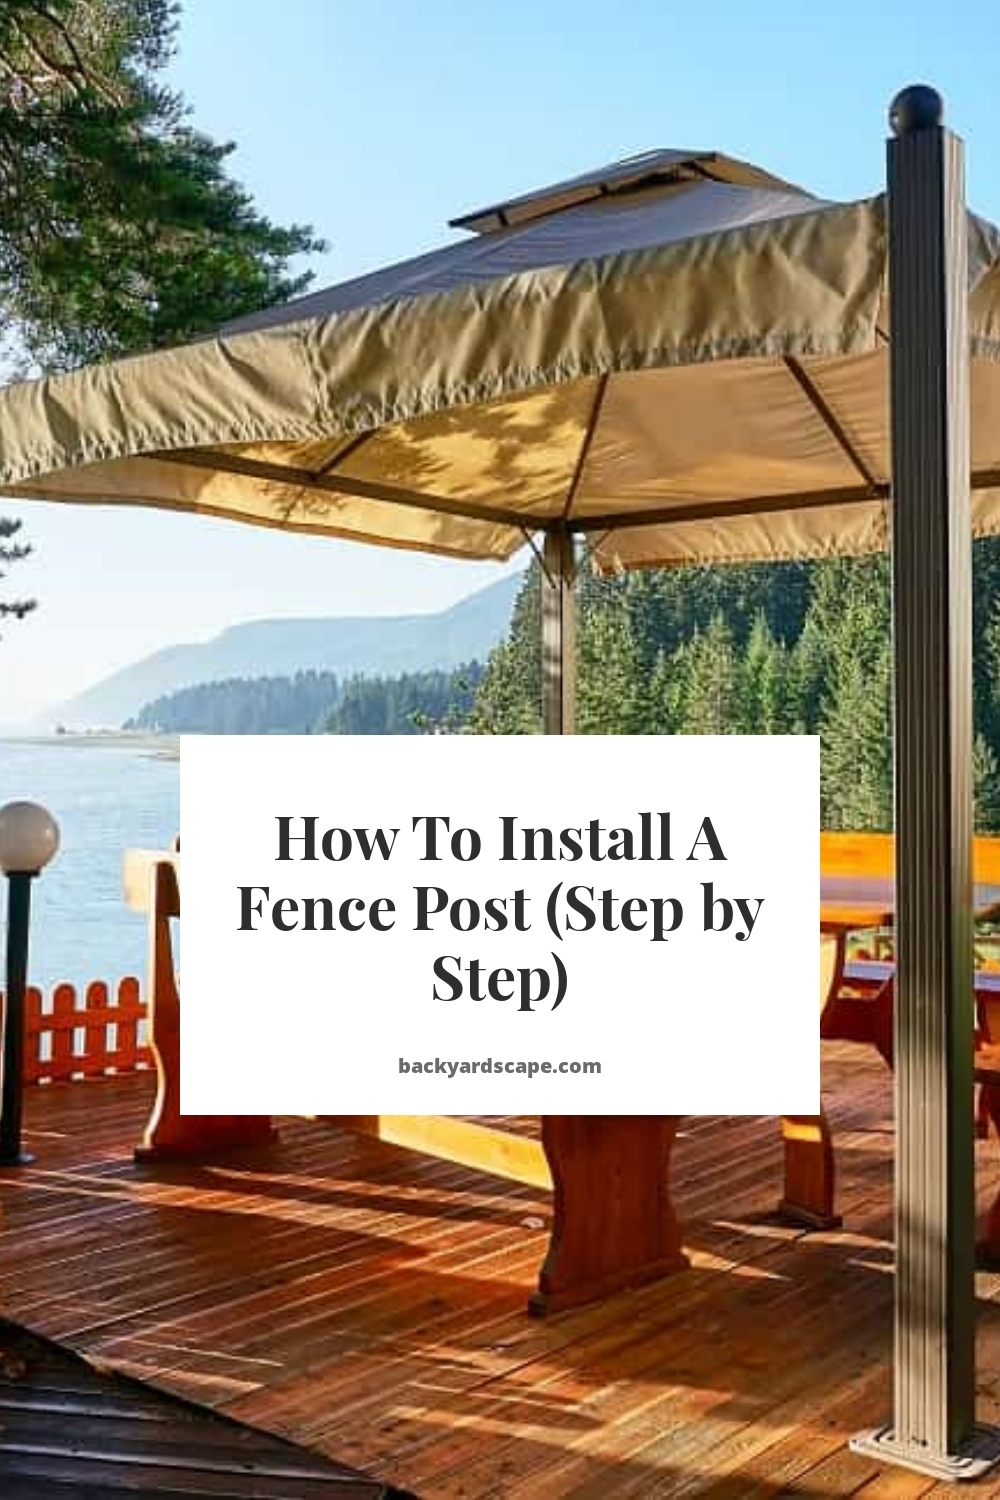 How To Install A Fence Post (Step by Step)